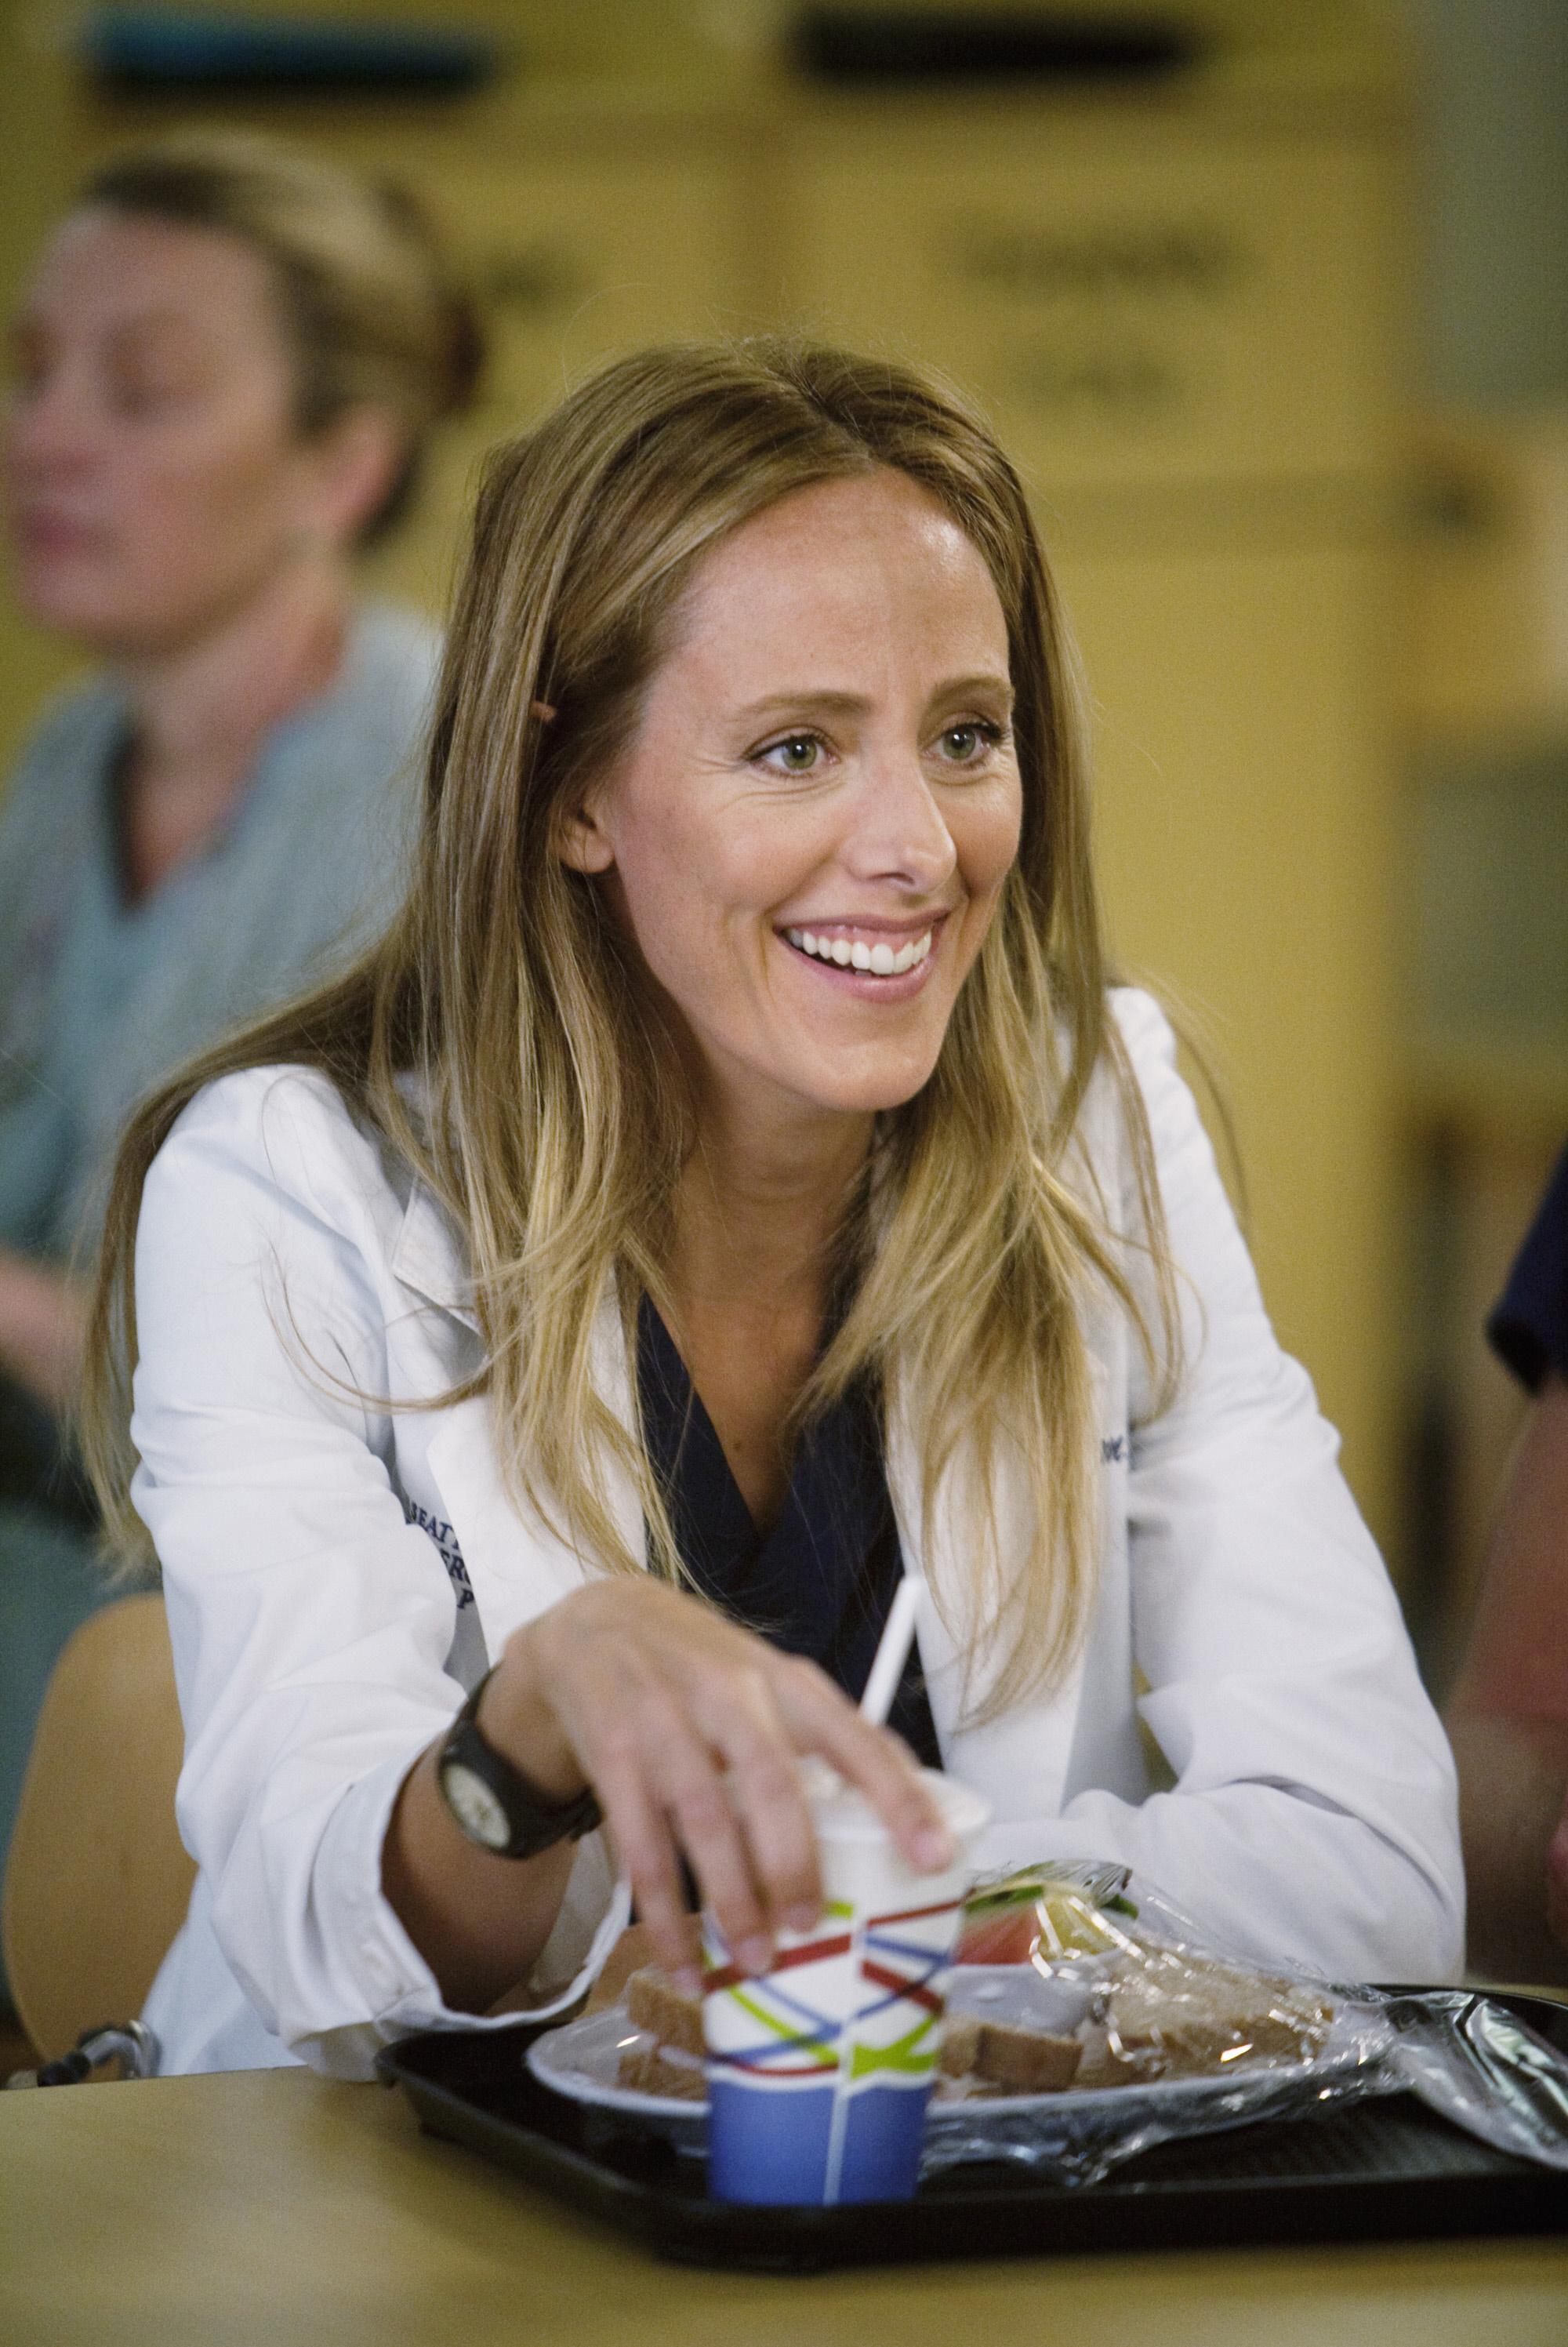 No. 18: Dr. Teddy Altman